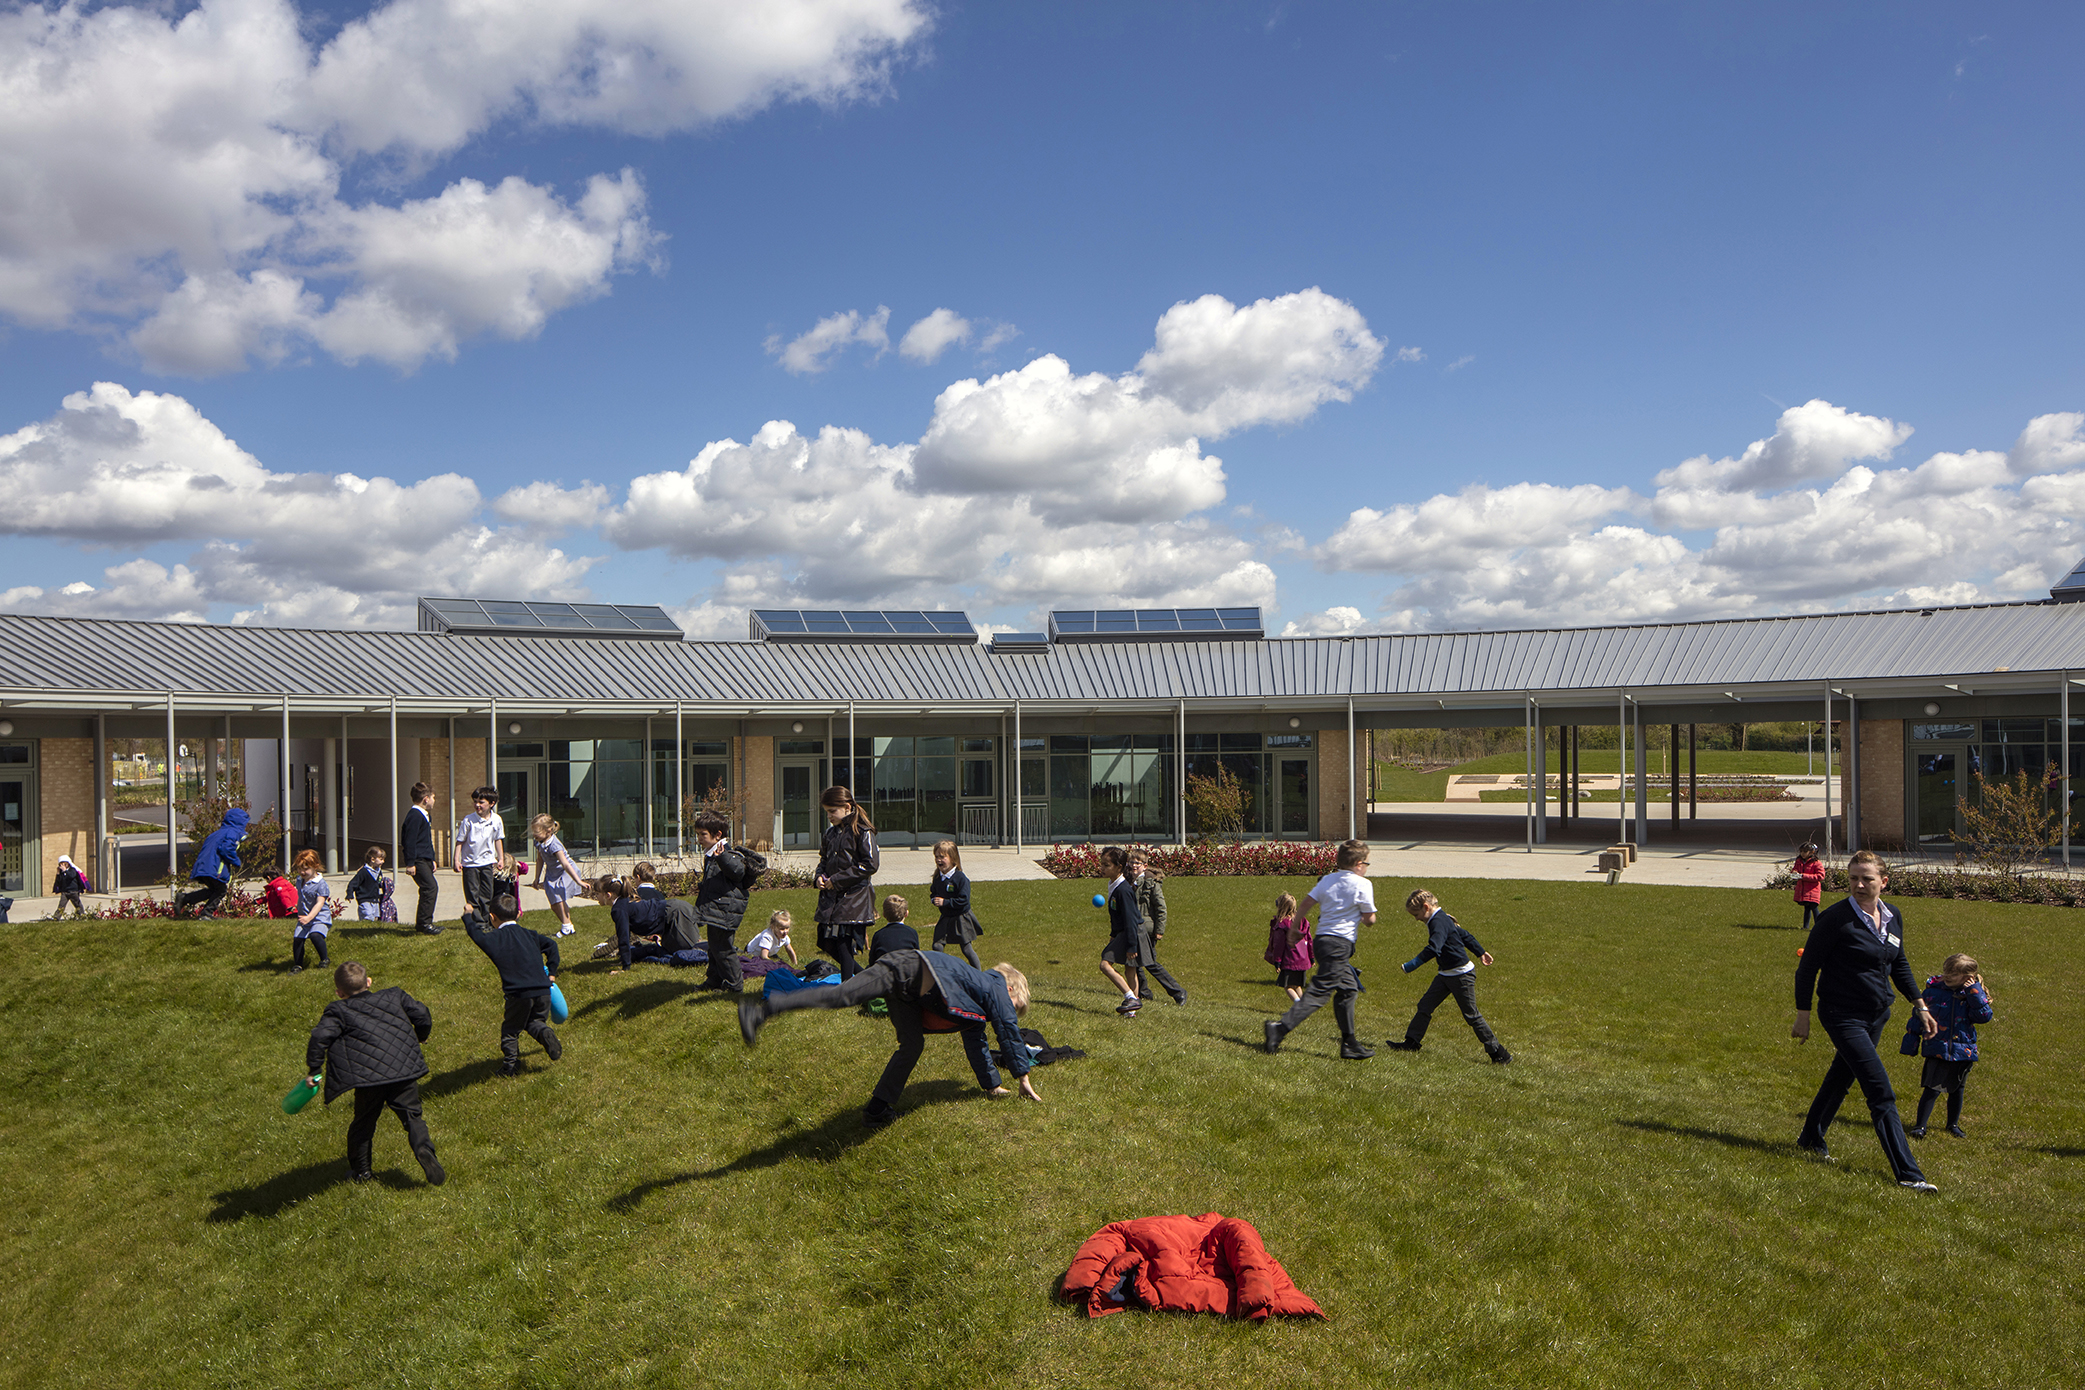 courtyard play - University of Cambridge Primary School by Marks Barfield Architects